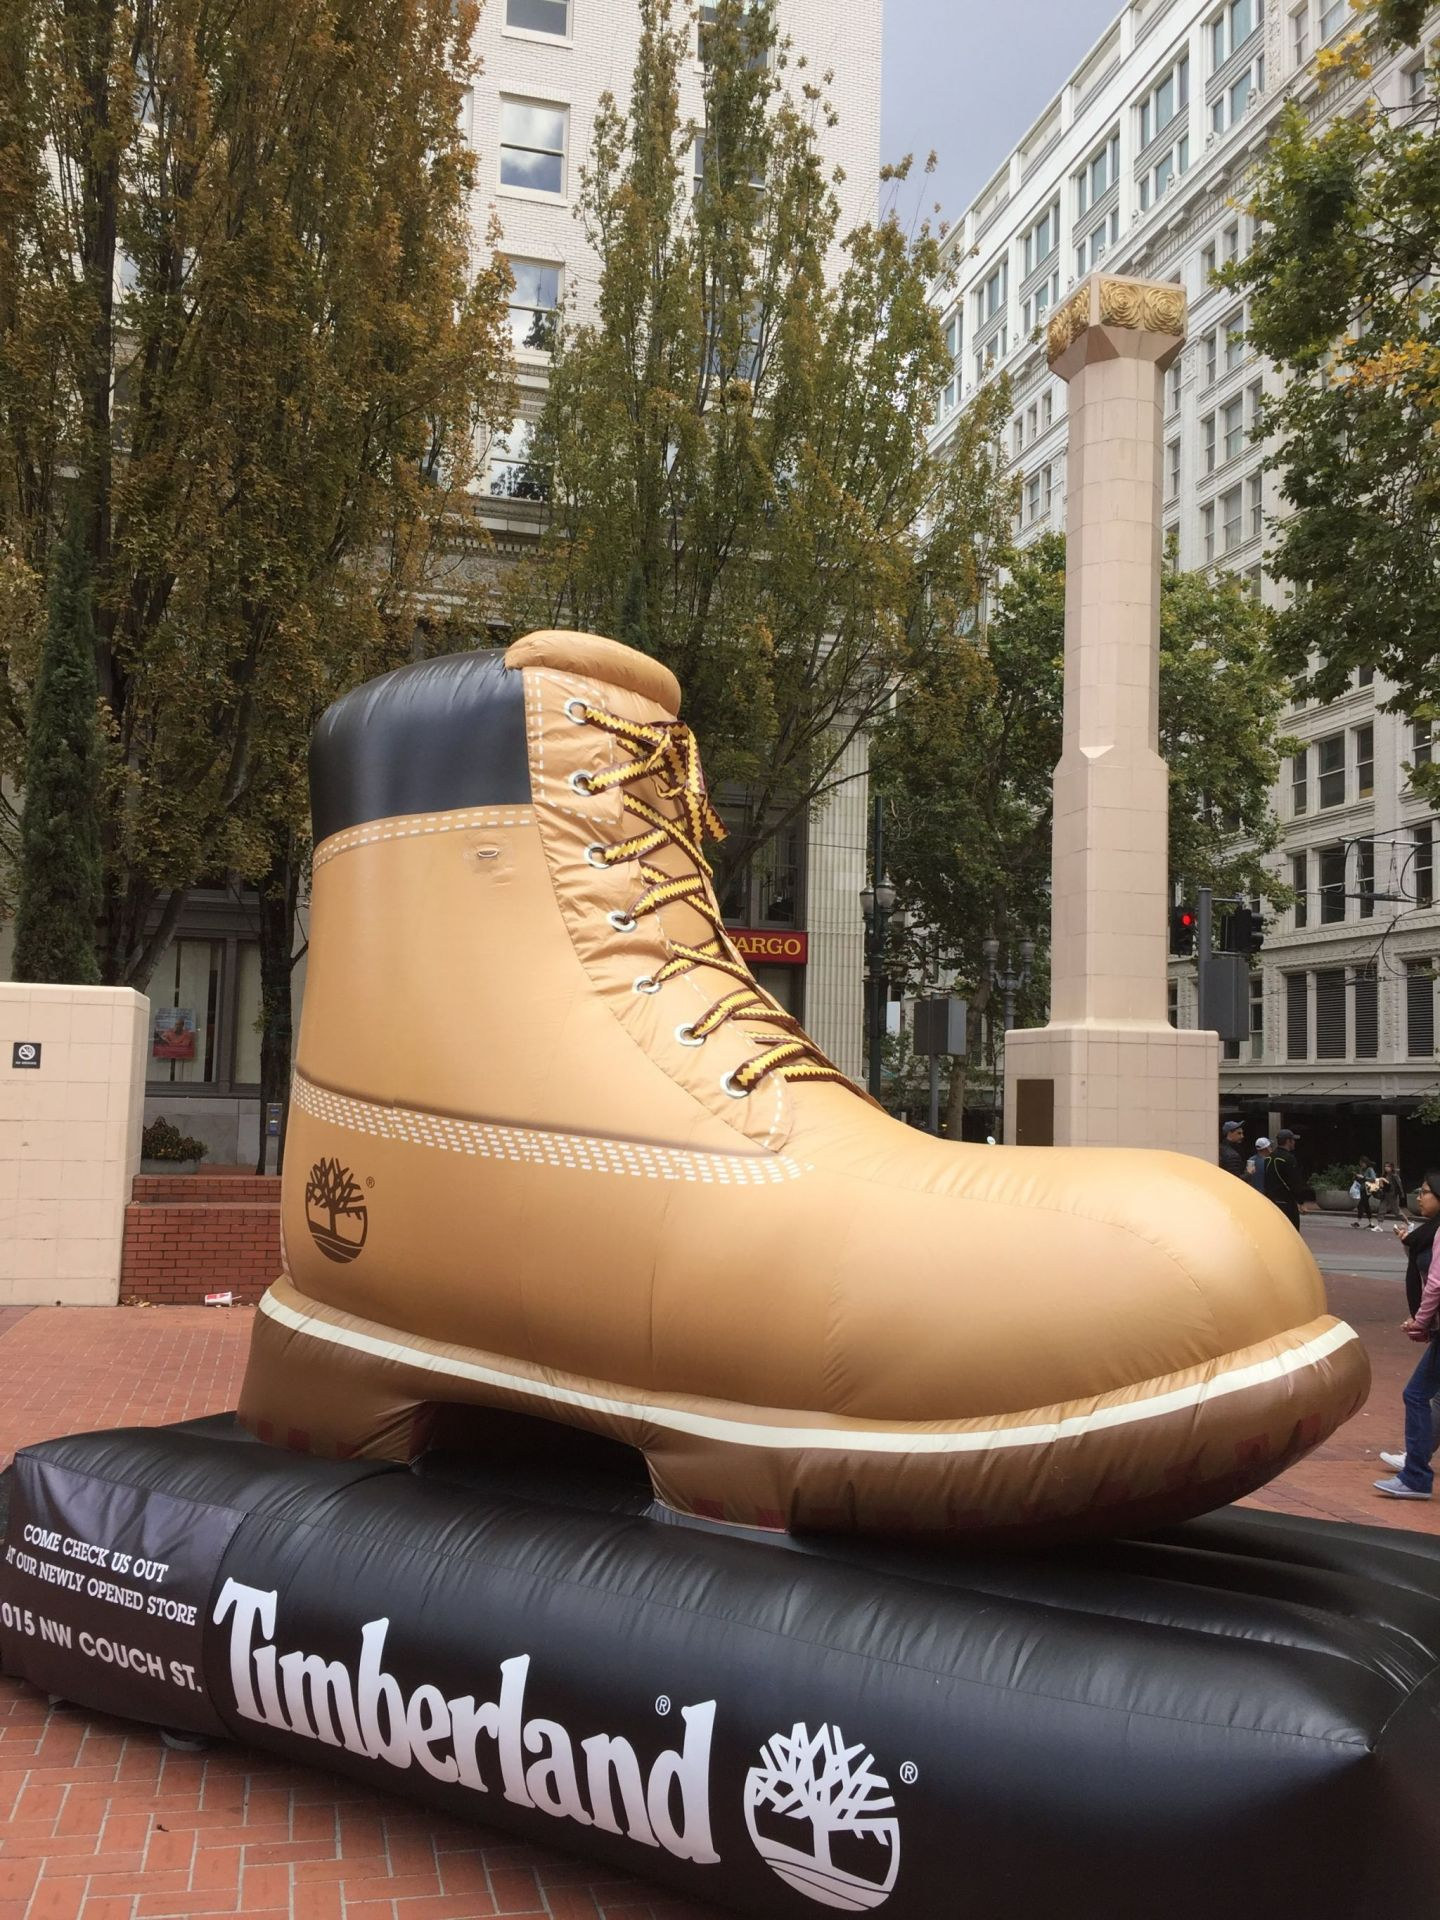 Giant Timberland shoe in the Pacific North West